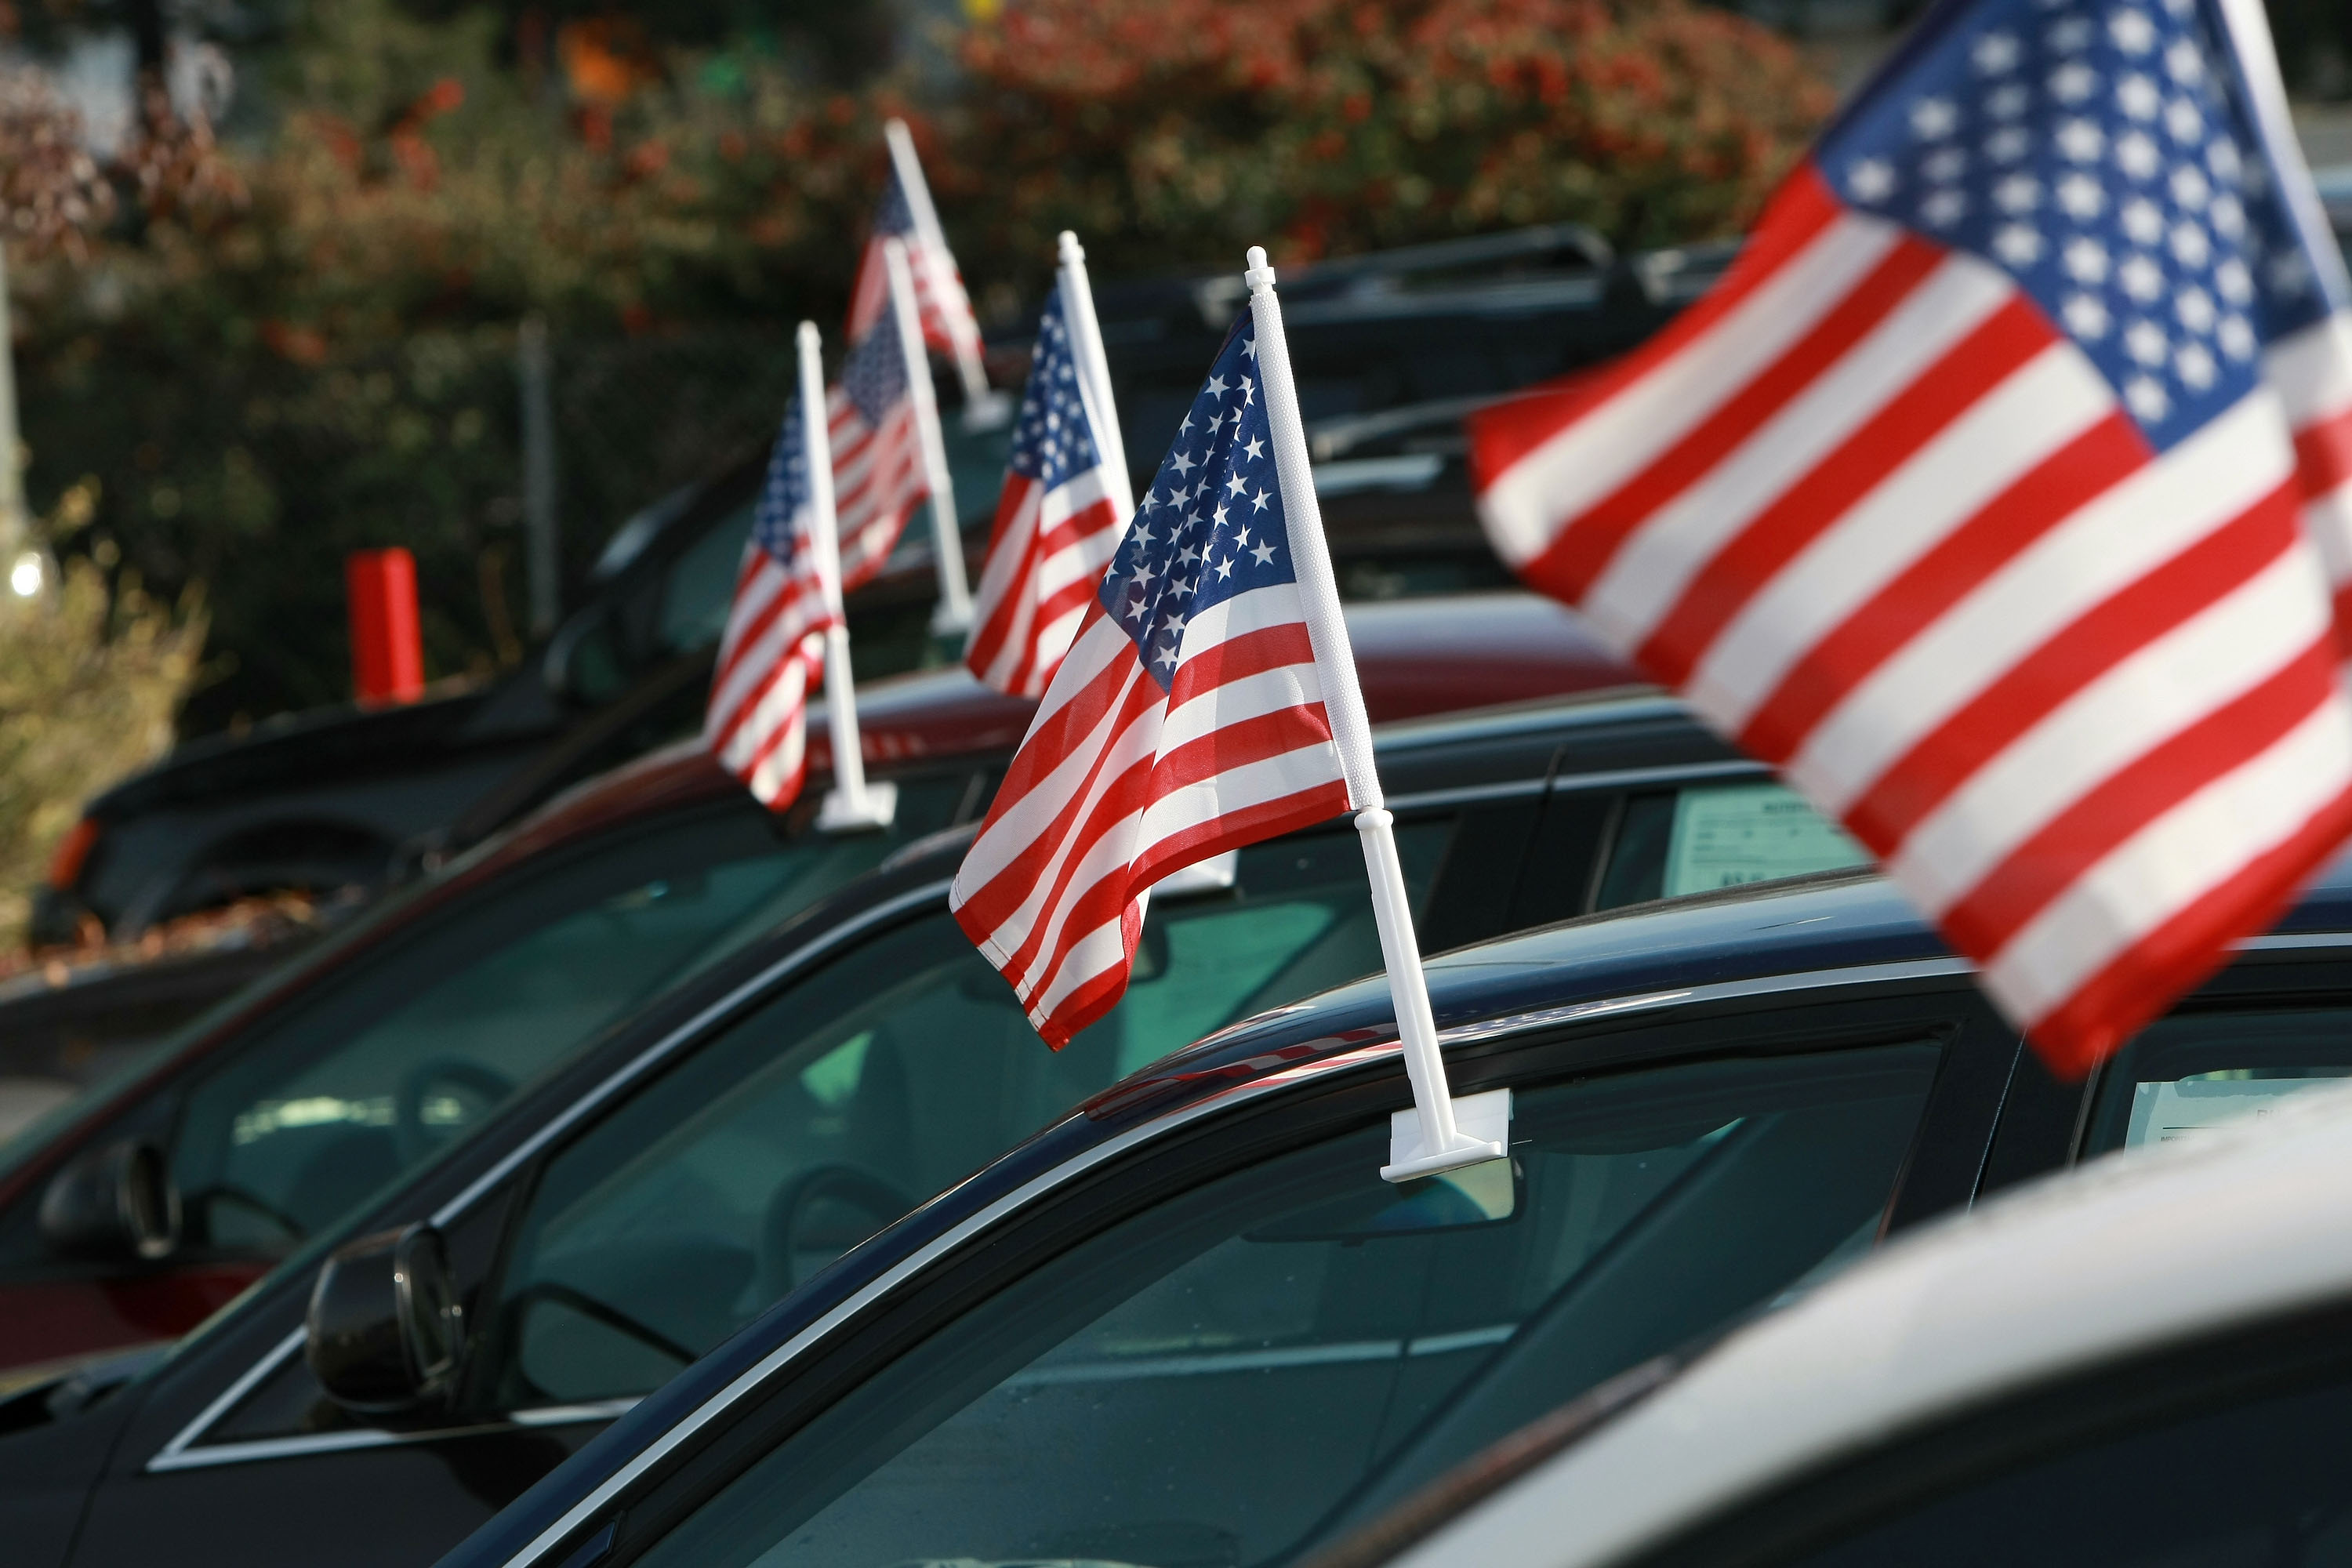 American flags are seen on cars for sale at Santa Rosa Chevrolet December 12, 2008 in Santa Rosa, California.